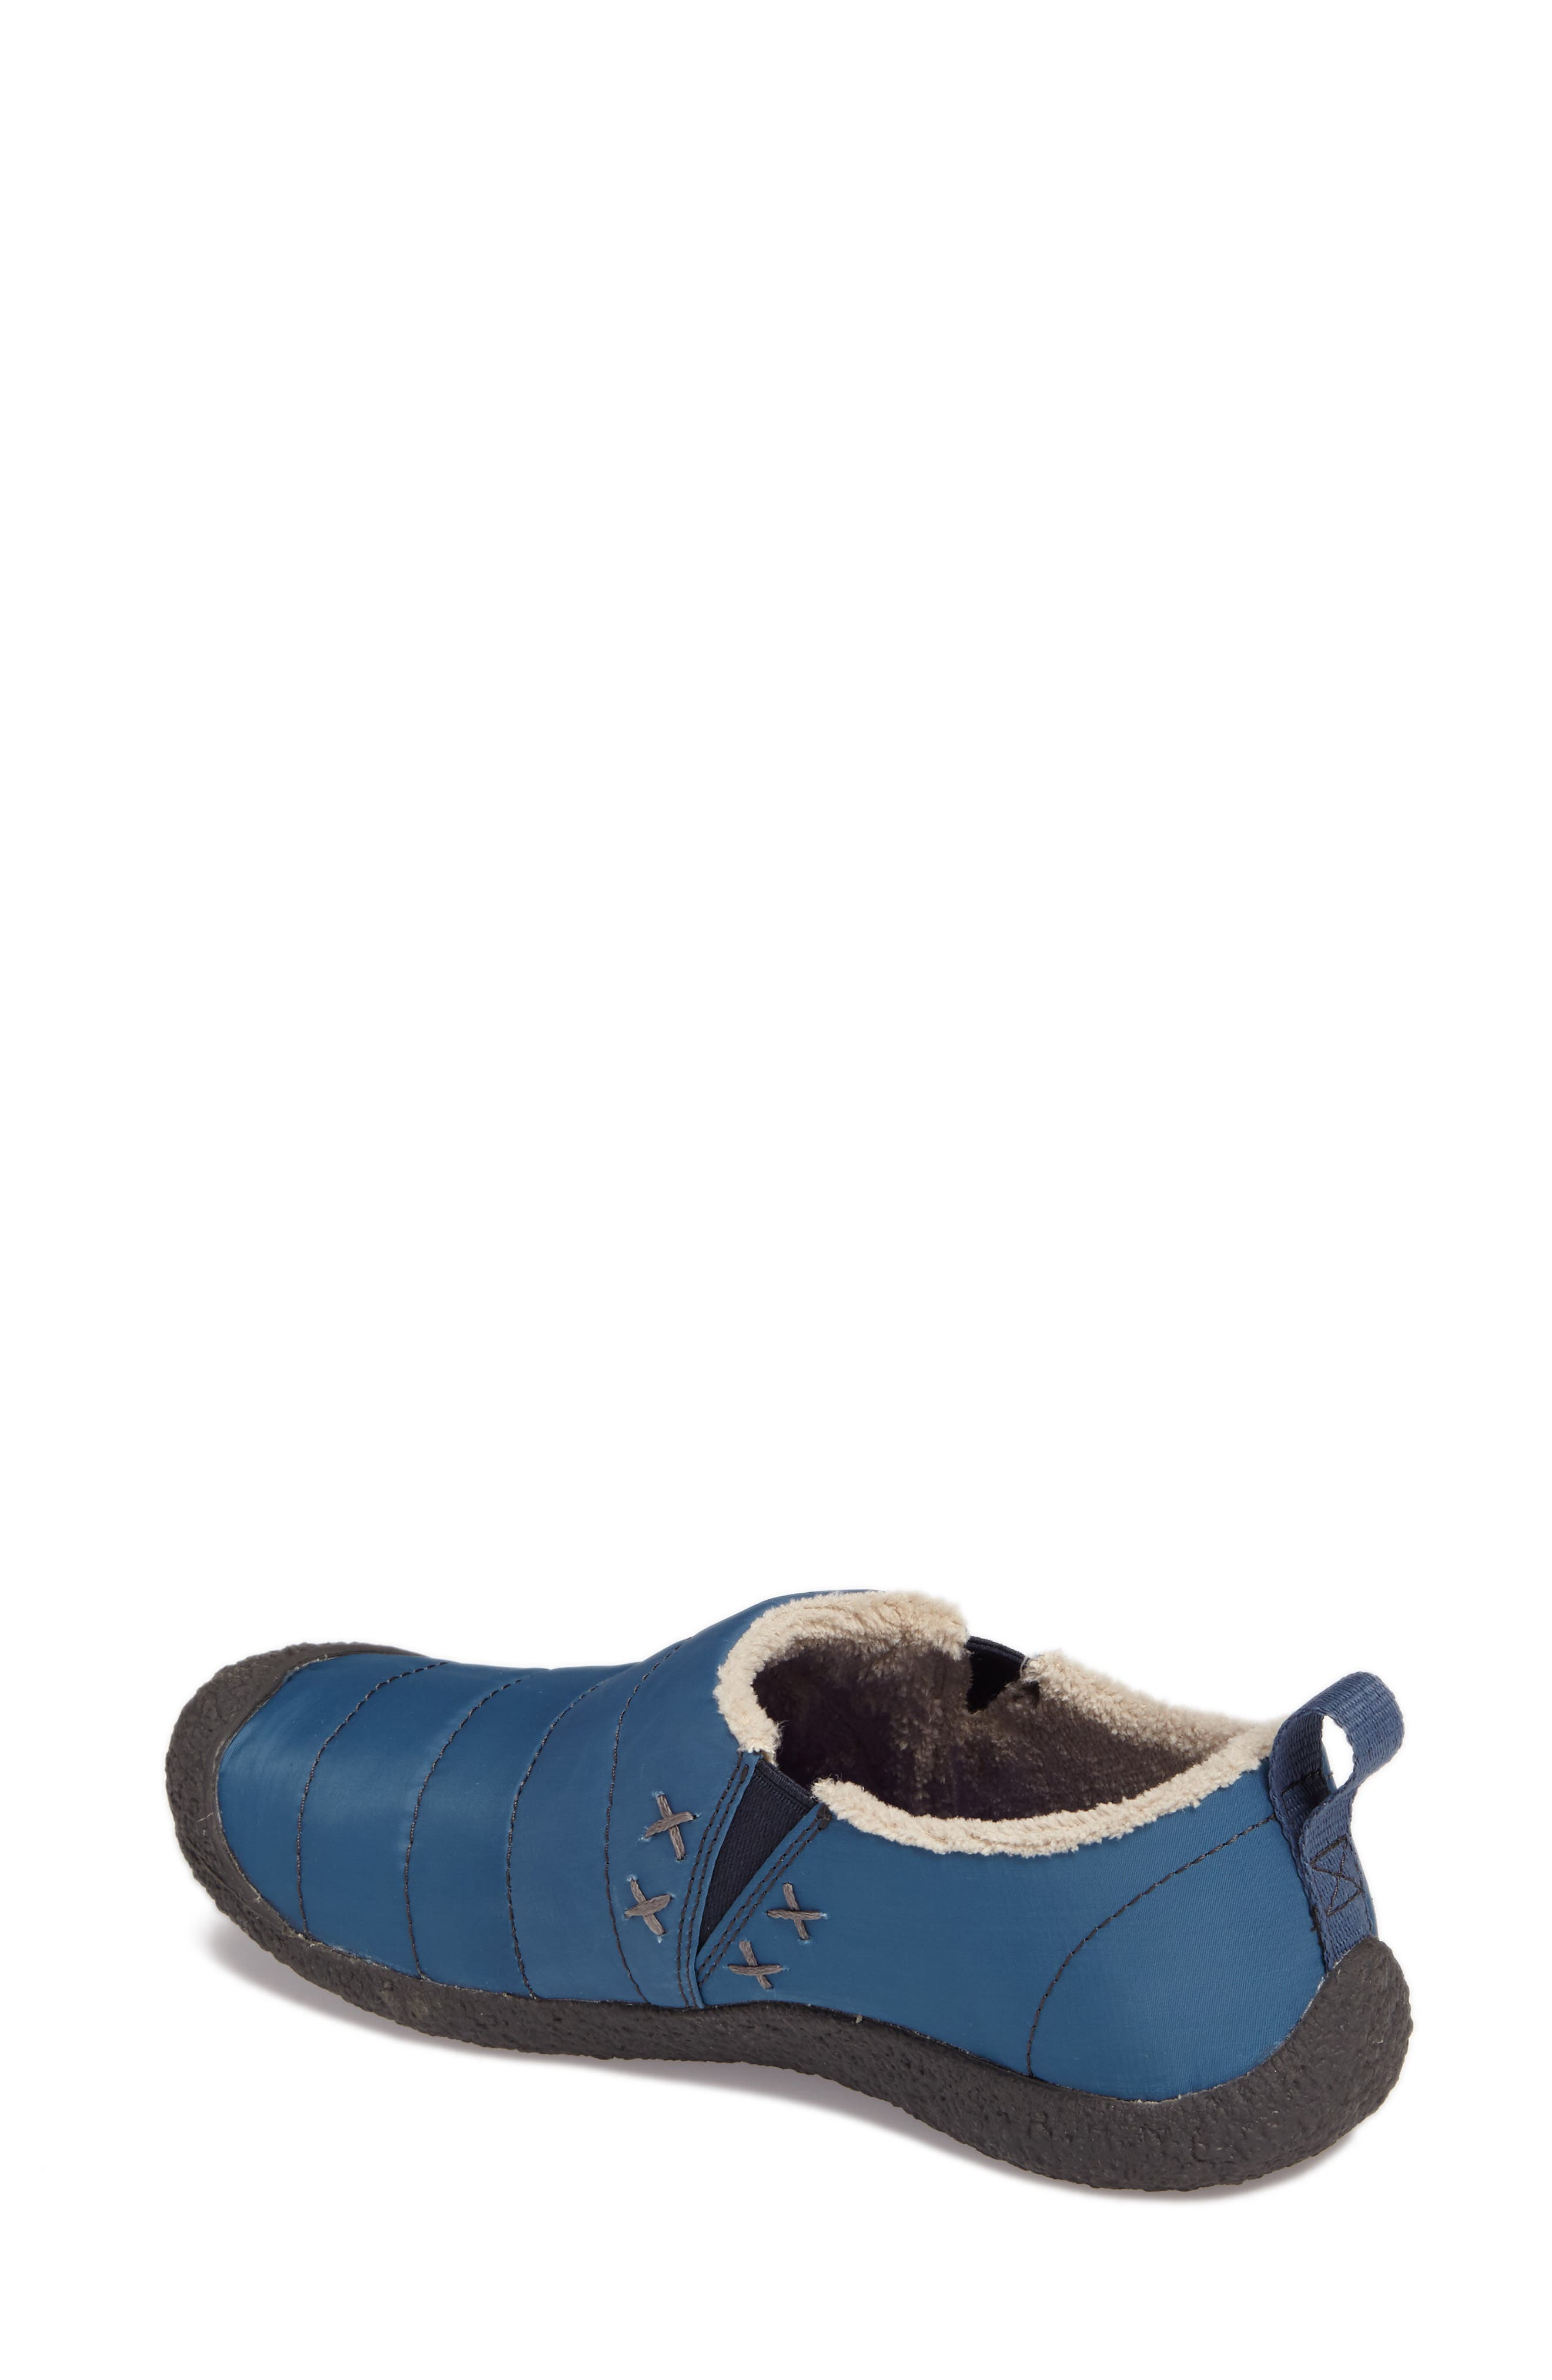 Howser II Water-Resistant Round Toe Clog,                             Alternate thumbnail 2, color,                             Captains Blue Nylon